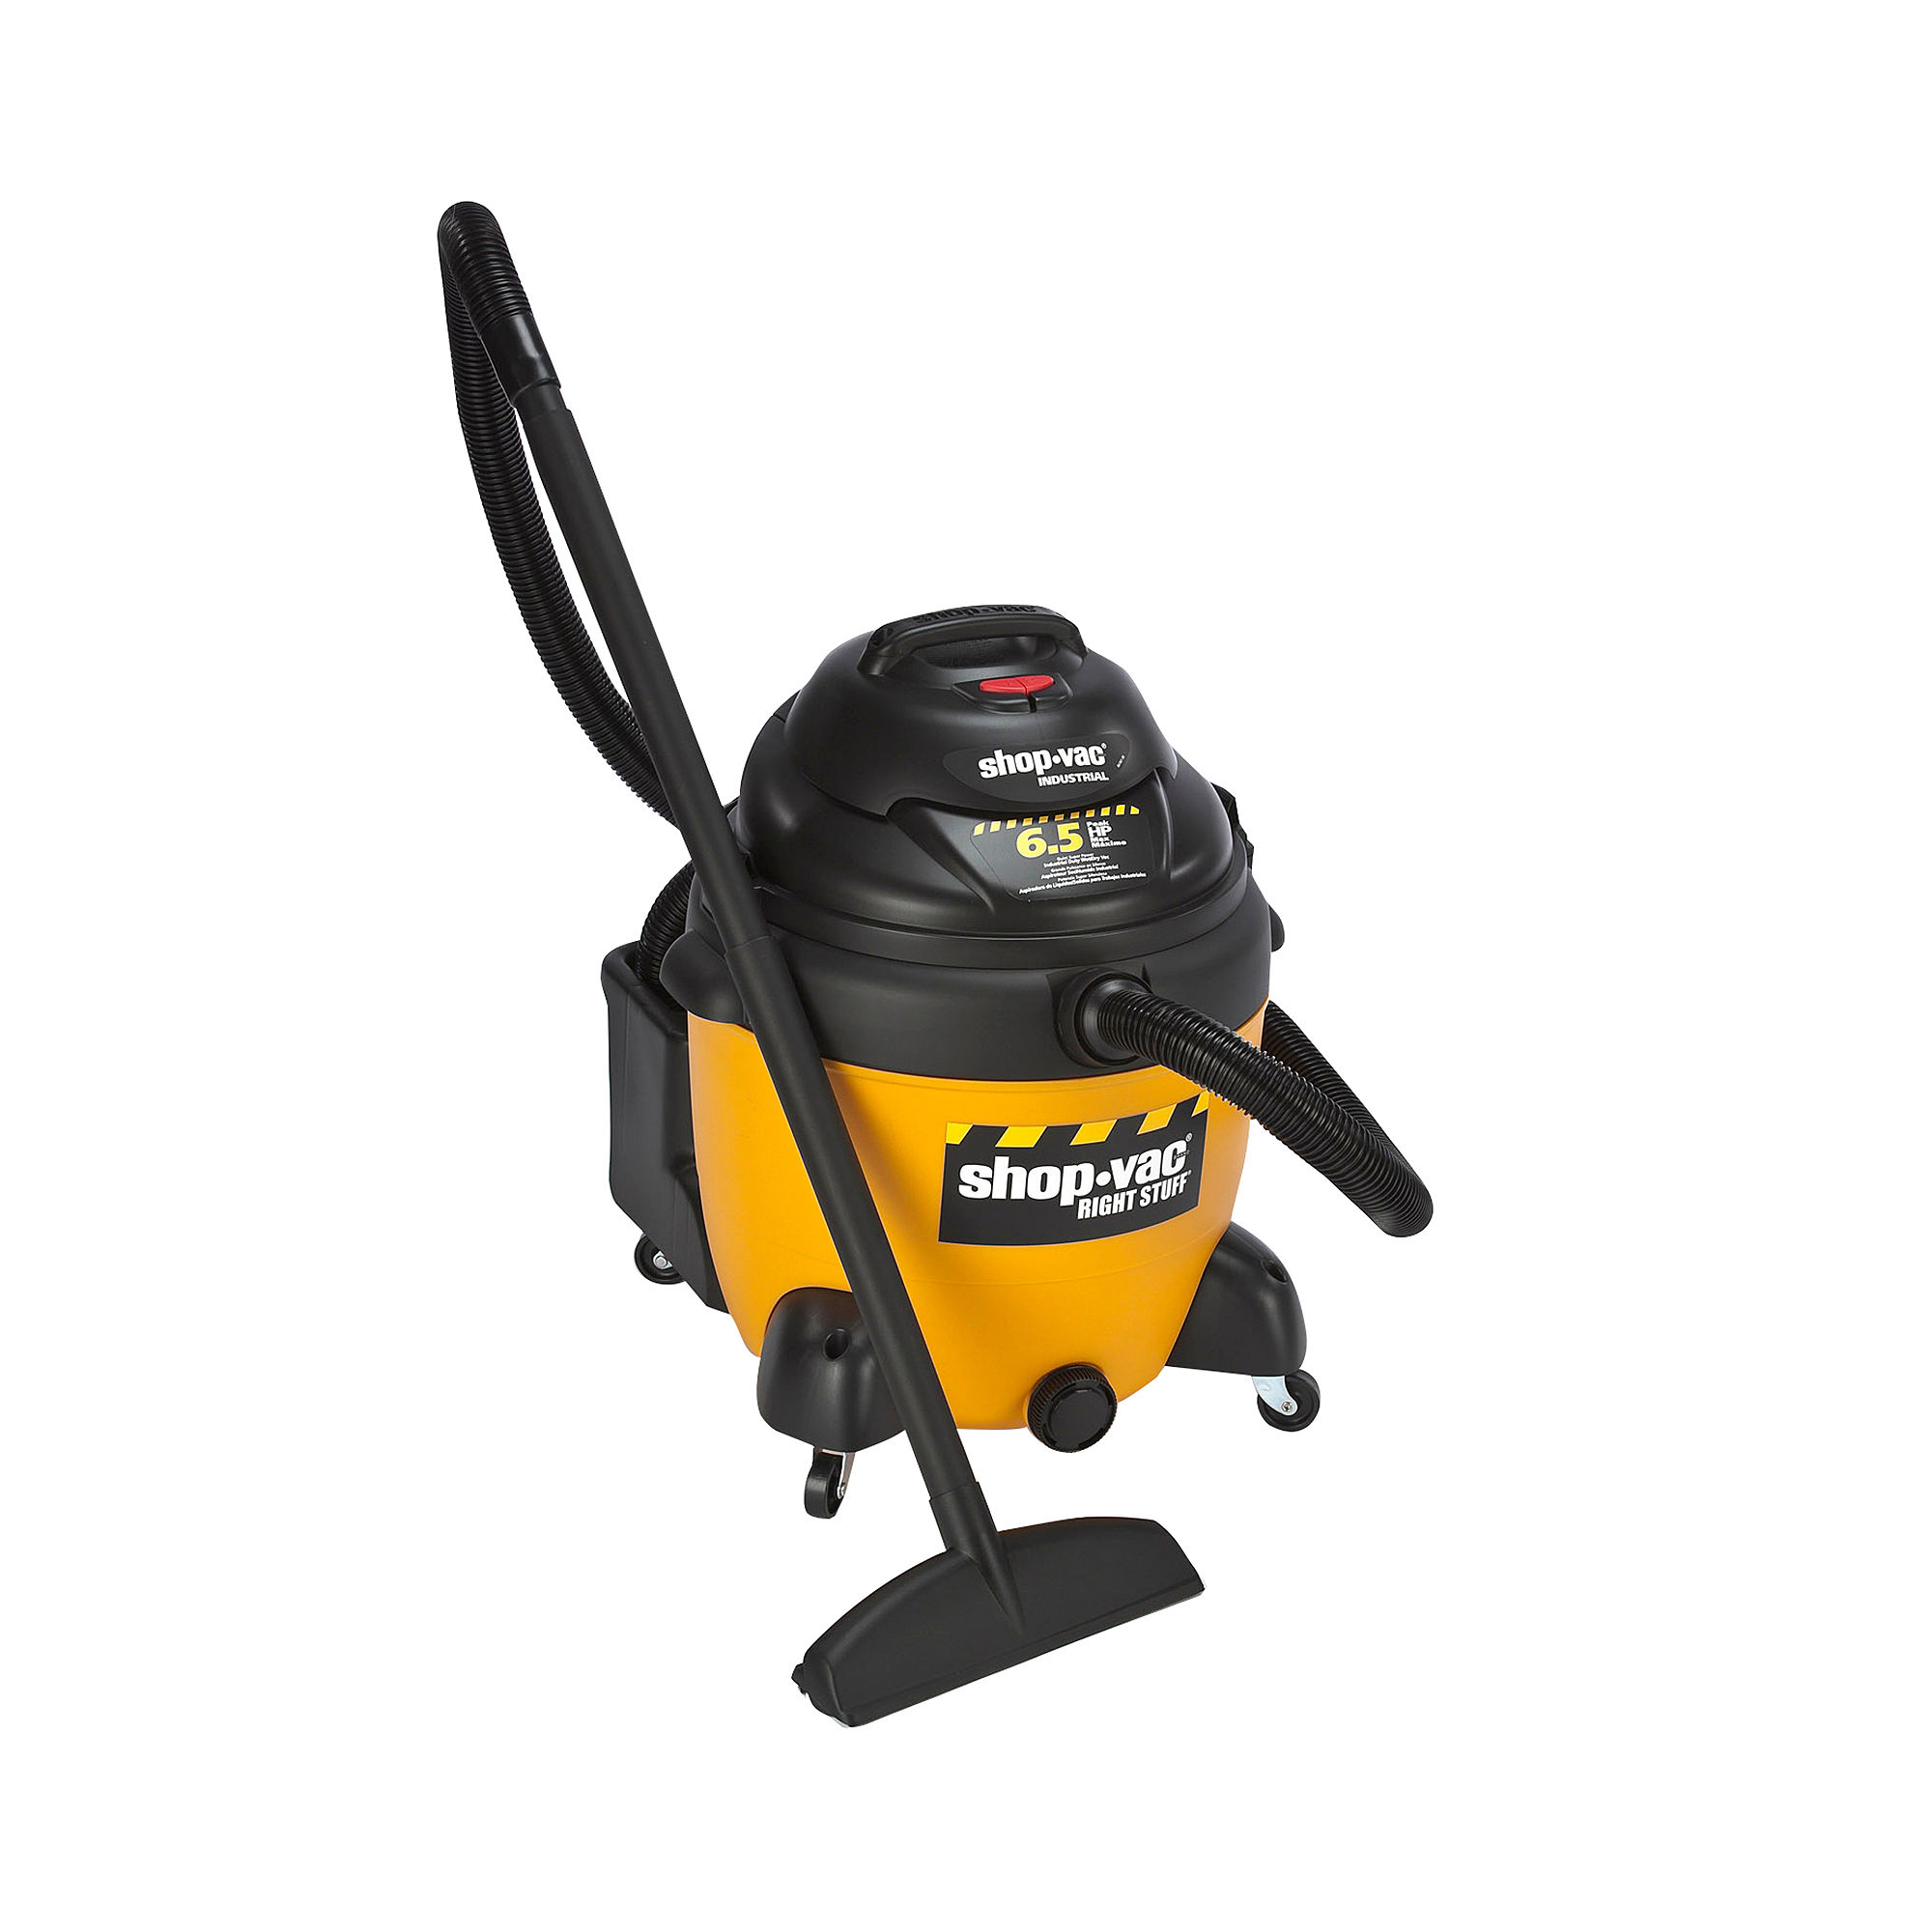 Shop-Vac Right Stuff 18-Gallon Wet/Dry Vacuum Cleaner